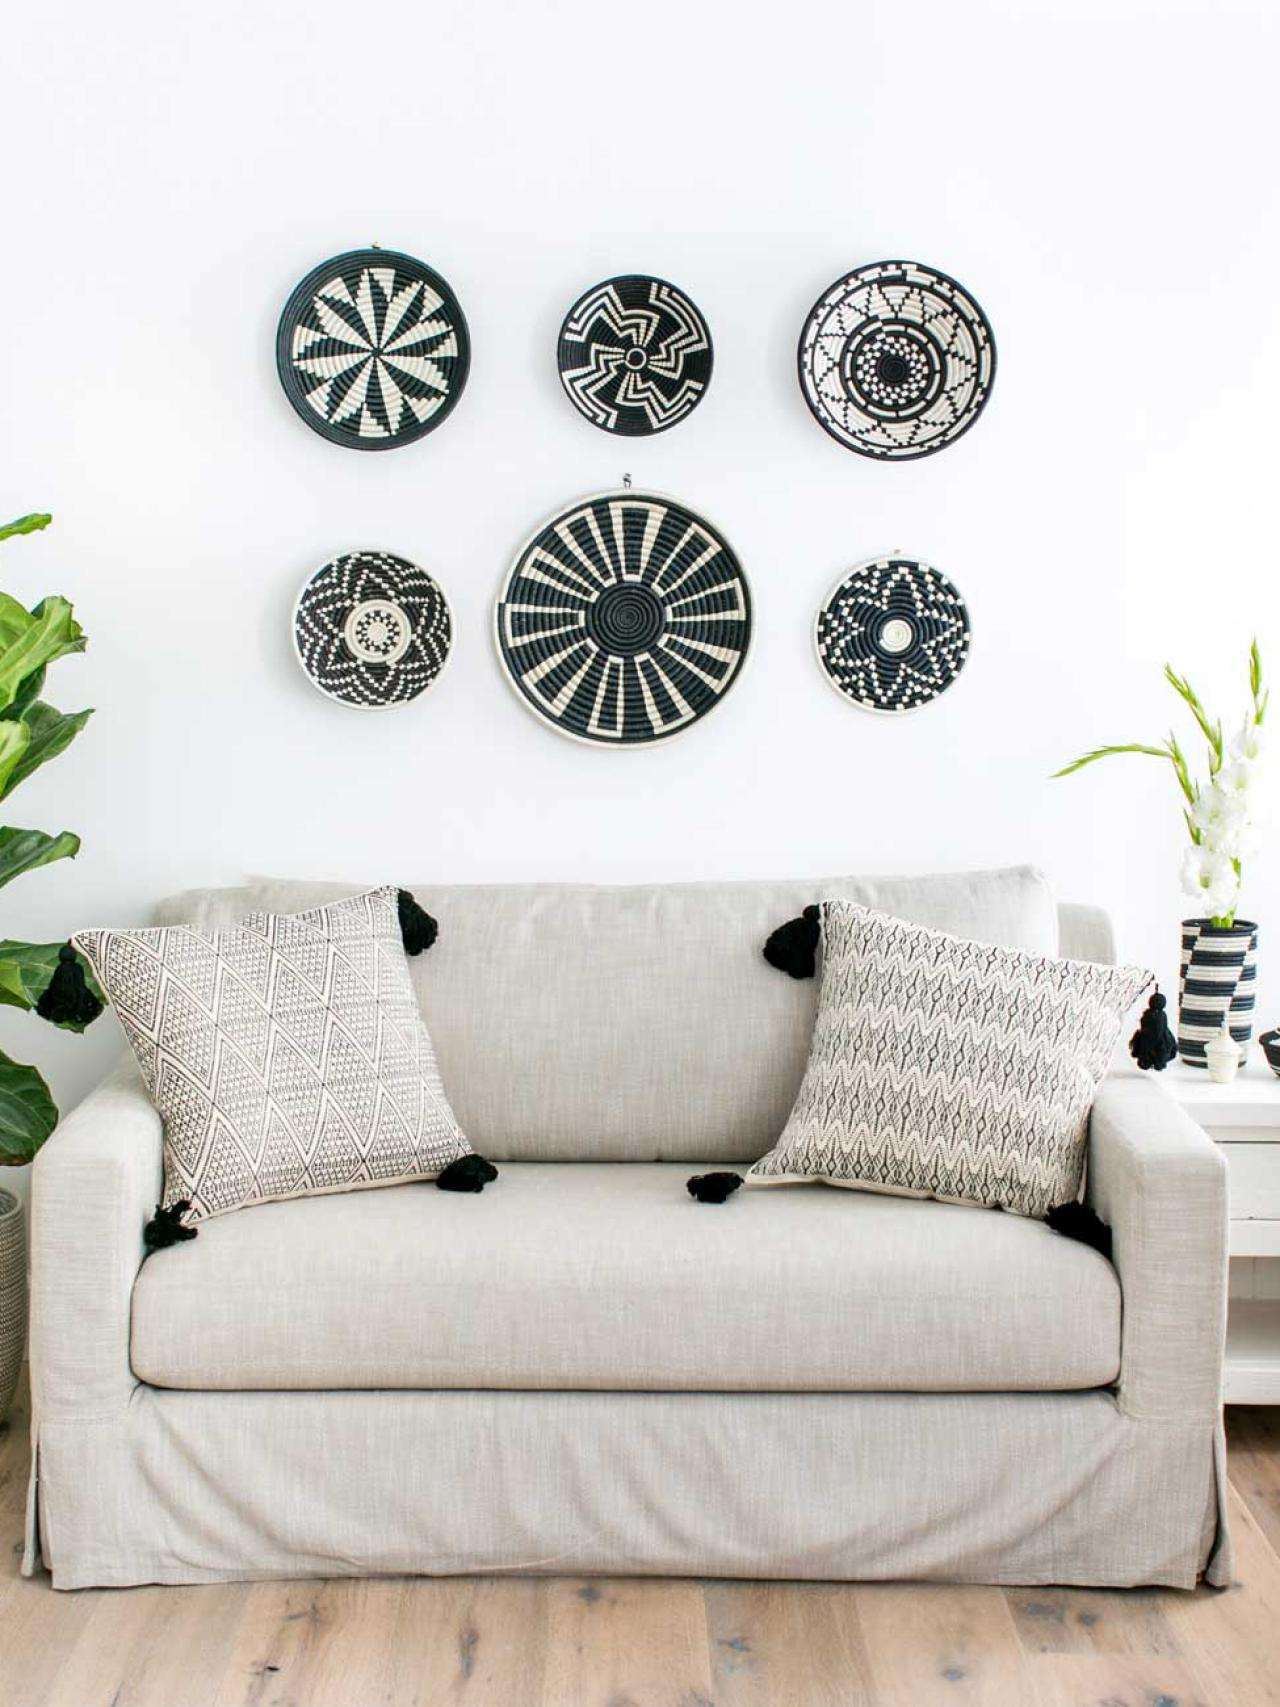 Best Fair Trade Home Decor Stores Hgtv S Decorating Design This Month